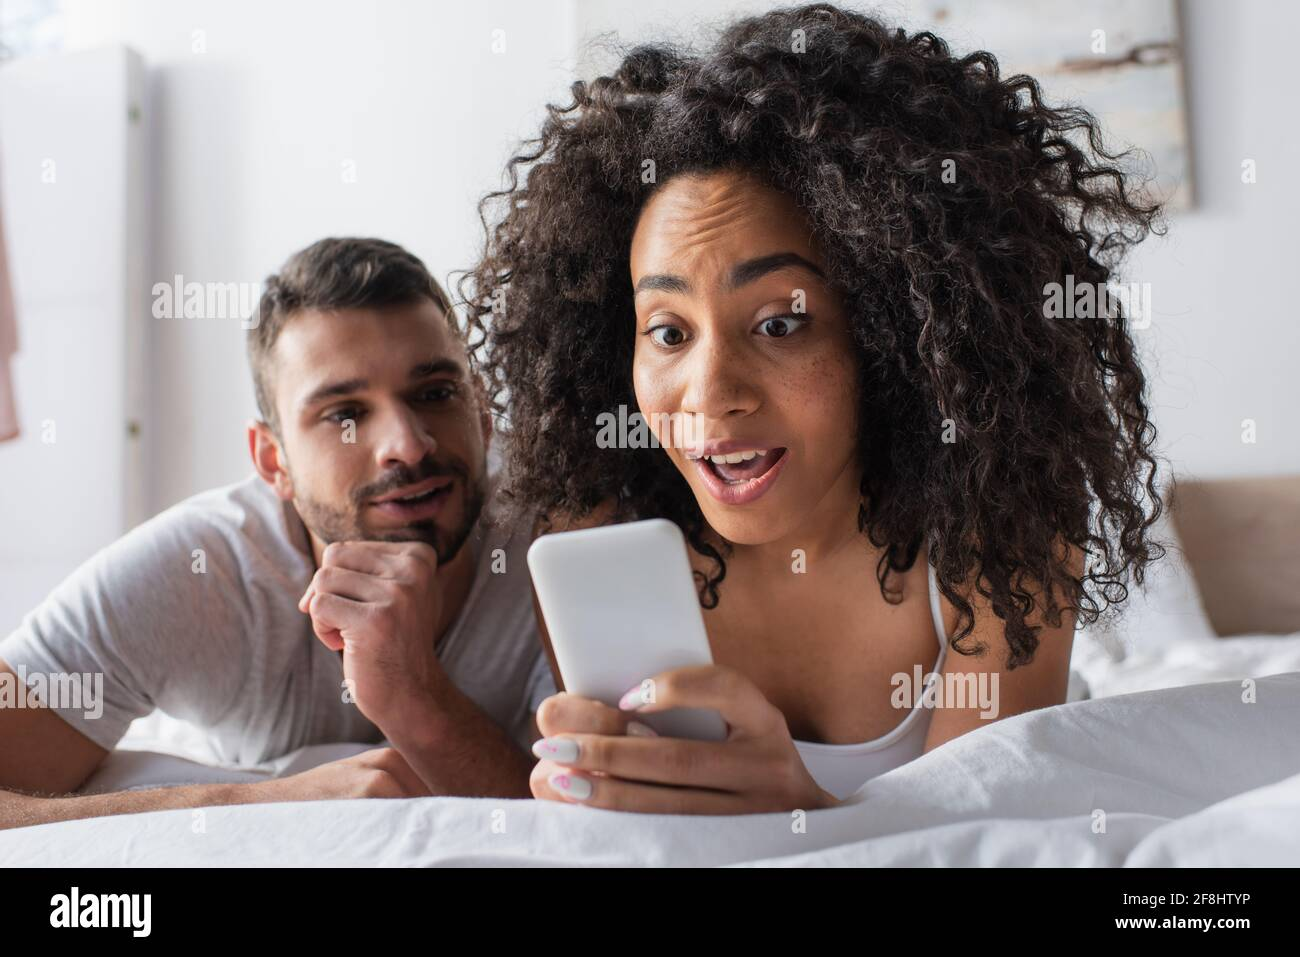 surprised african american woman holding smartphone near bearded boyfriend on blurred background Stock Photo